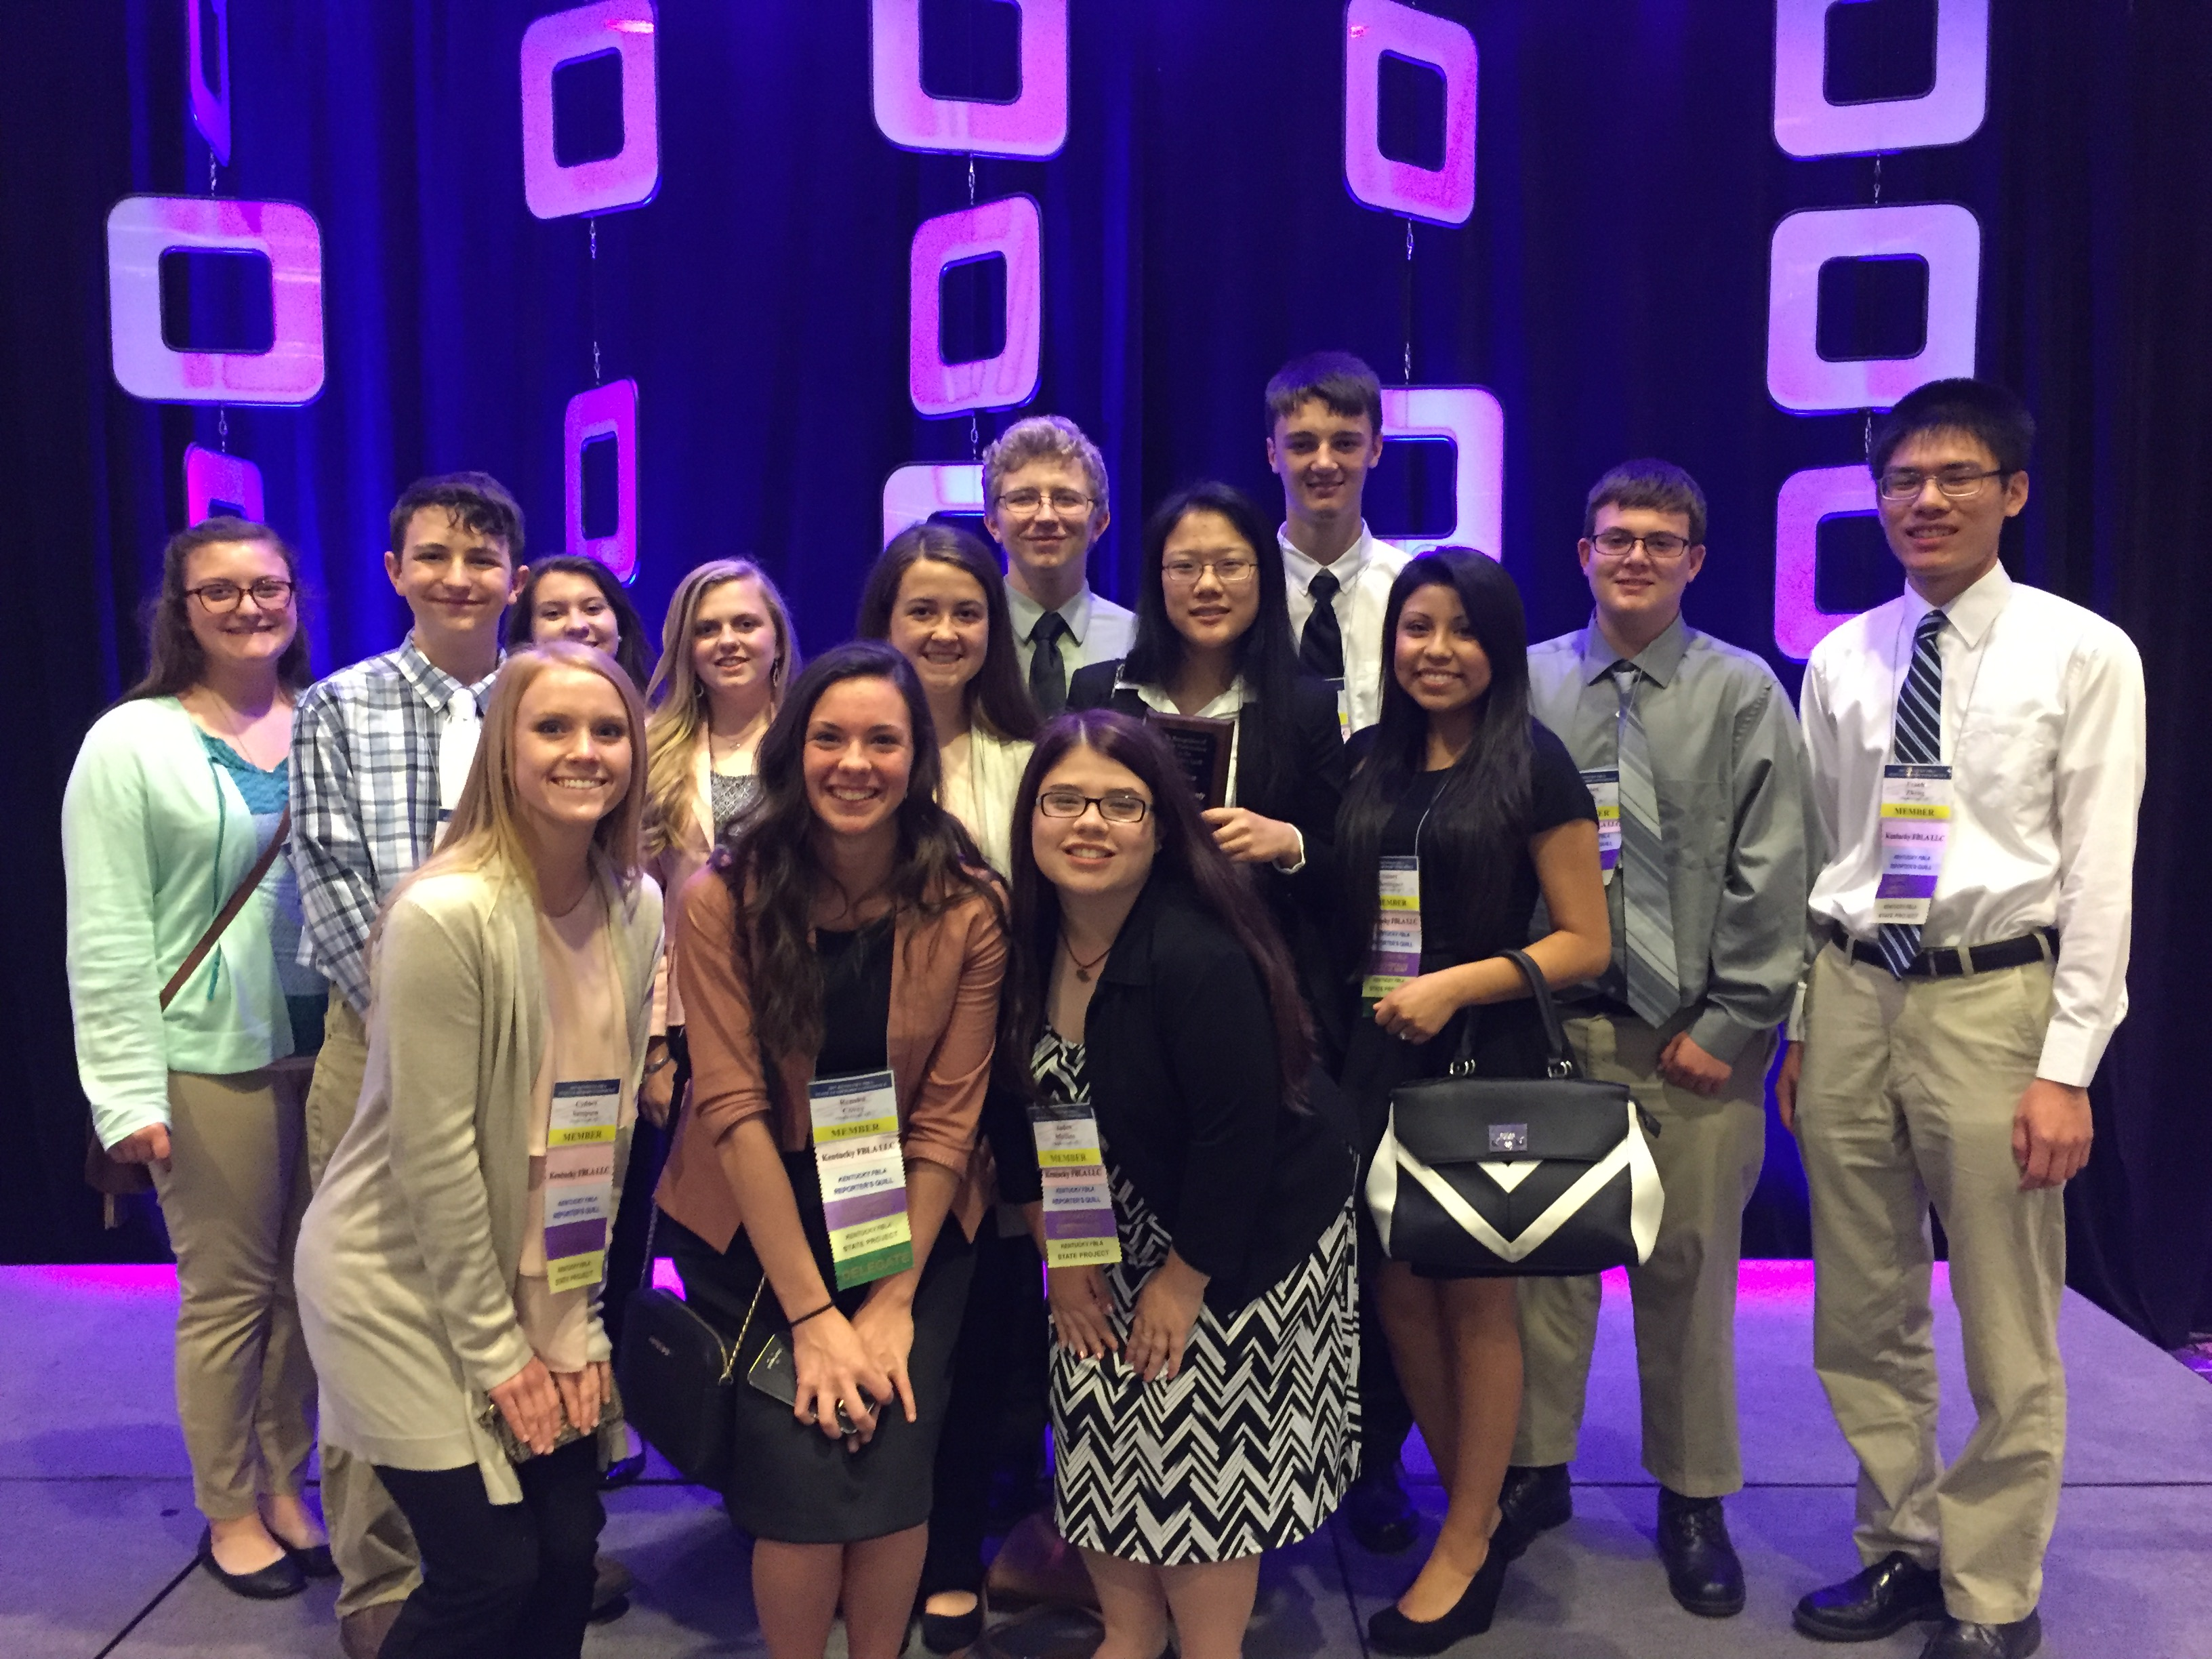 On April 17-19, 2017, fourteen members of CCATC's FBLA chapter attended the State Leadership Conference at the Galt House in Louisville, Kentucky.